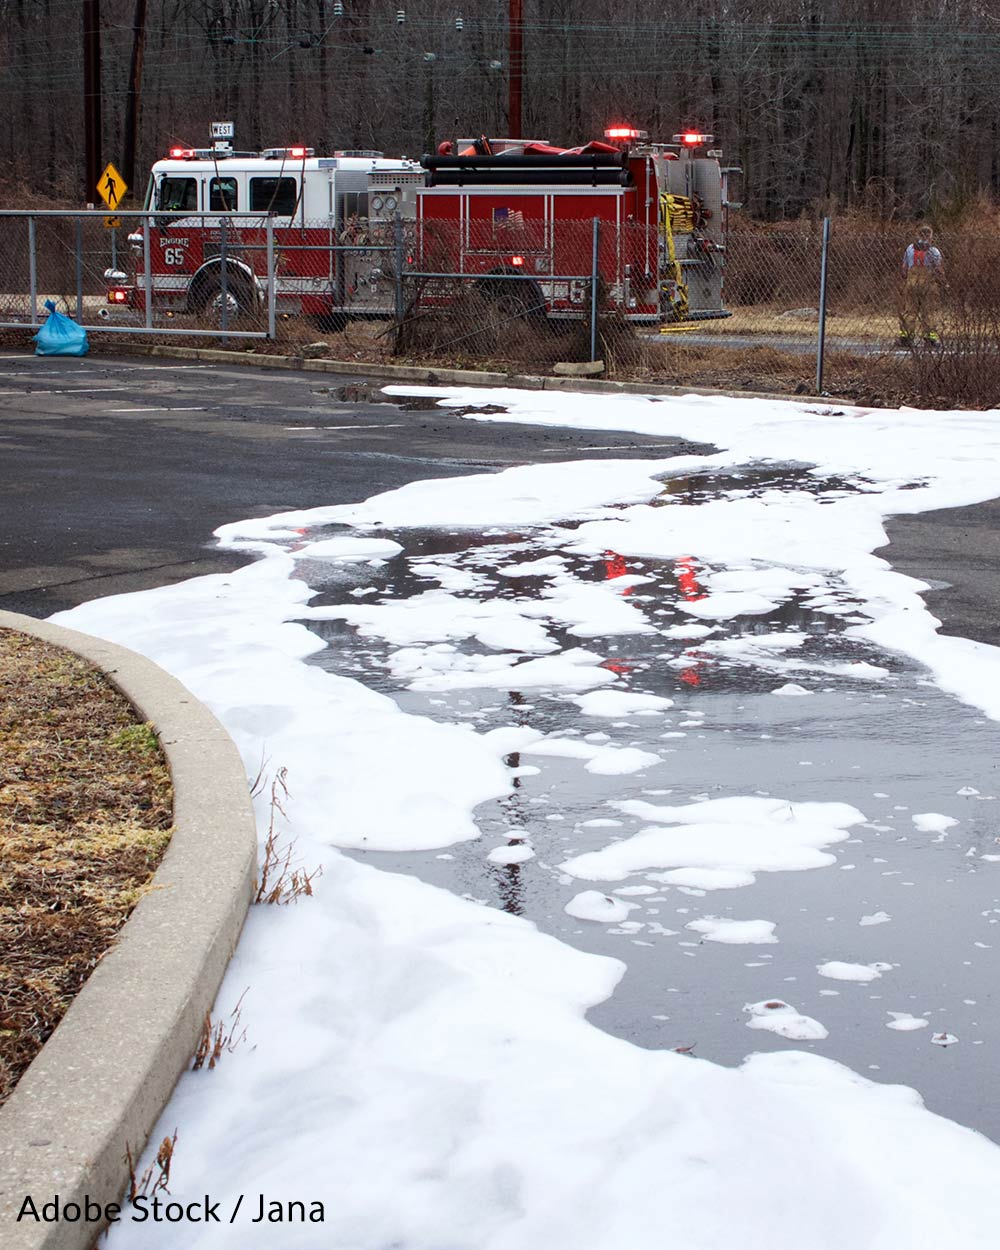 PFAS is found in aqueous fire fighting foam (AFFF) and other products.